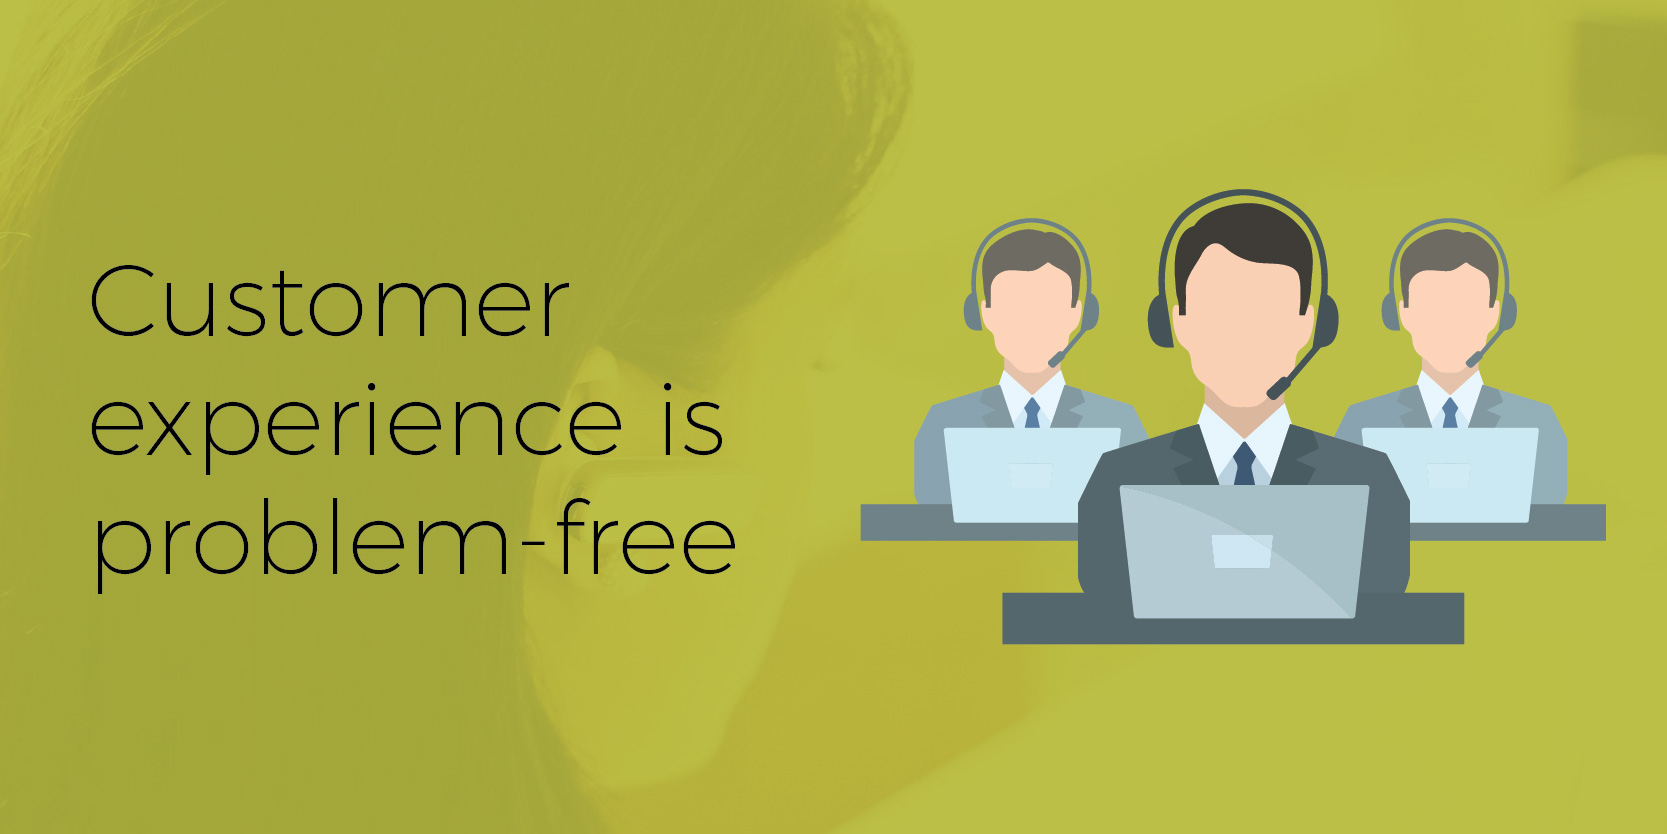 Customer experience is problem free